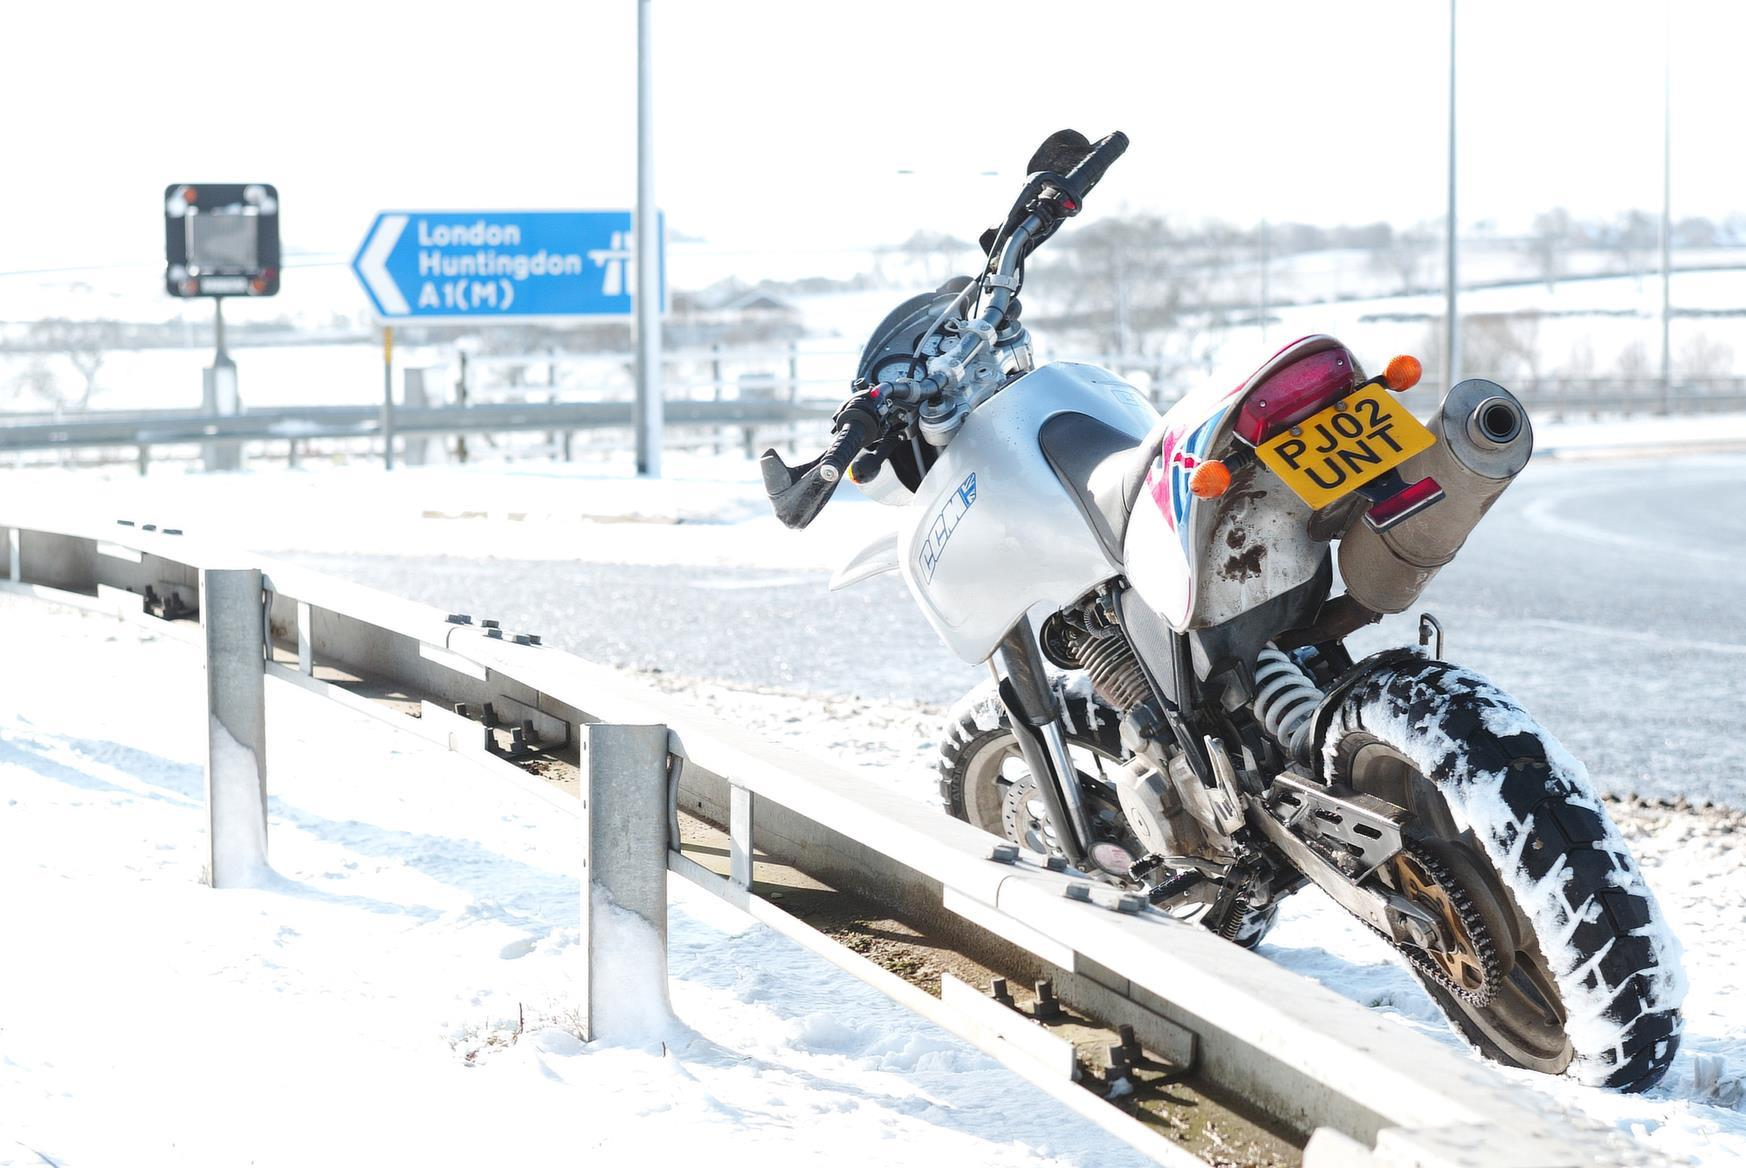 CCM motorbike in the snow